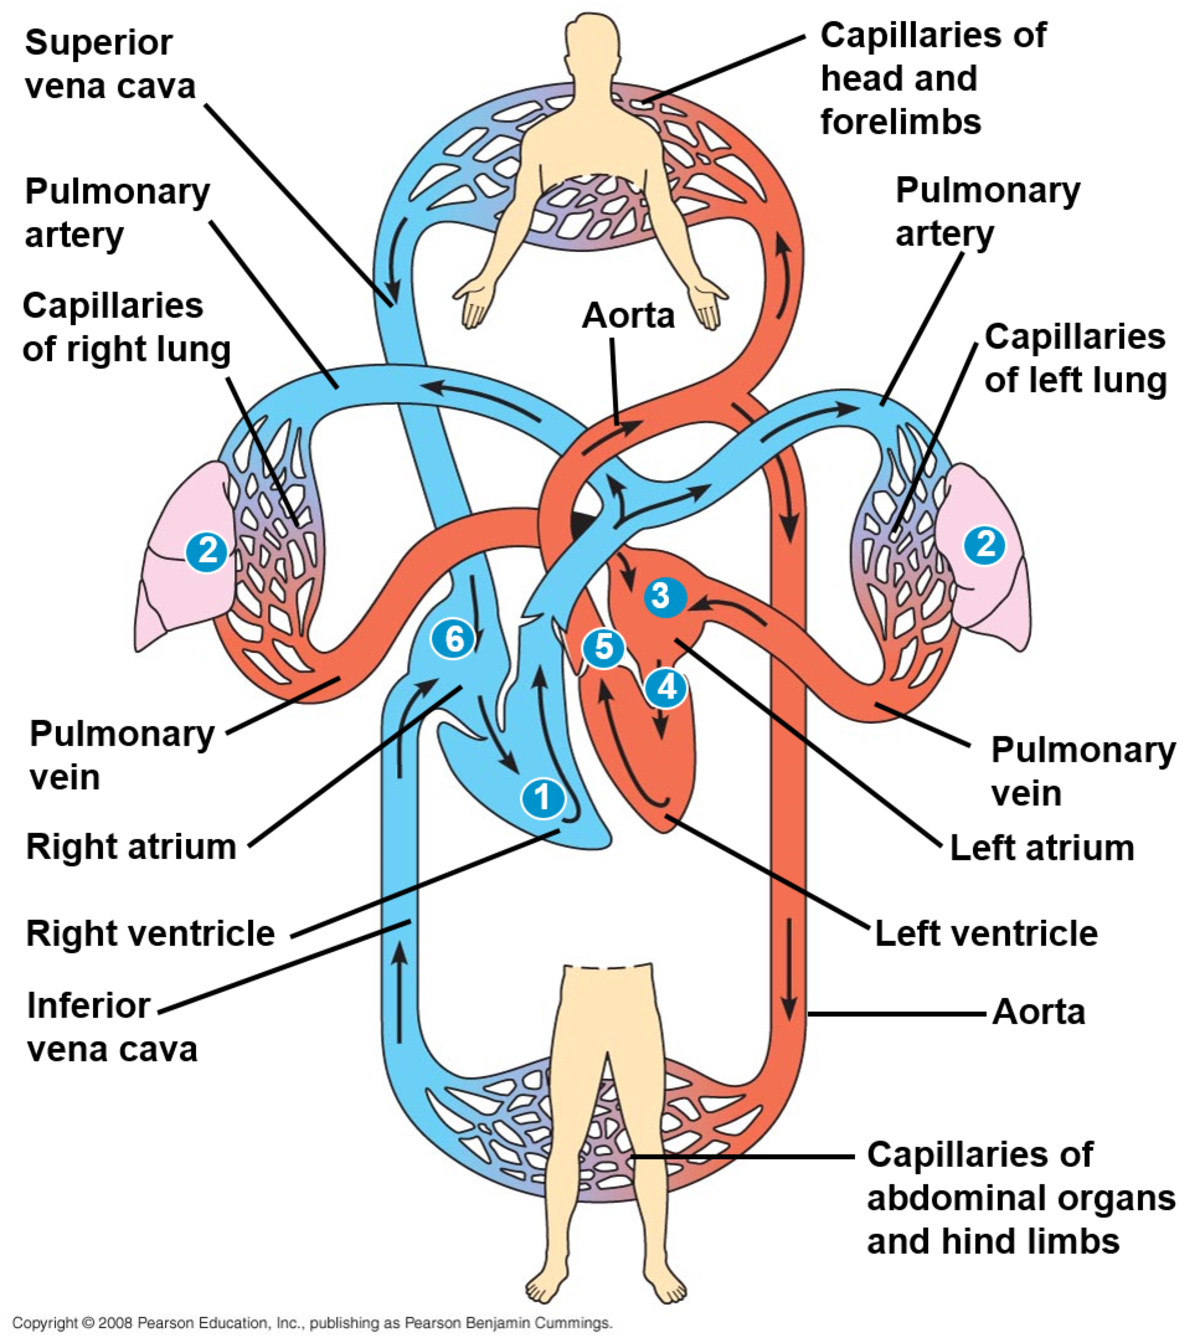 The Mammalian Circulatory System Differs From All Other